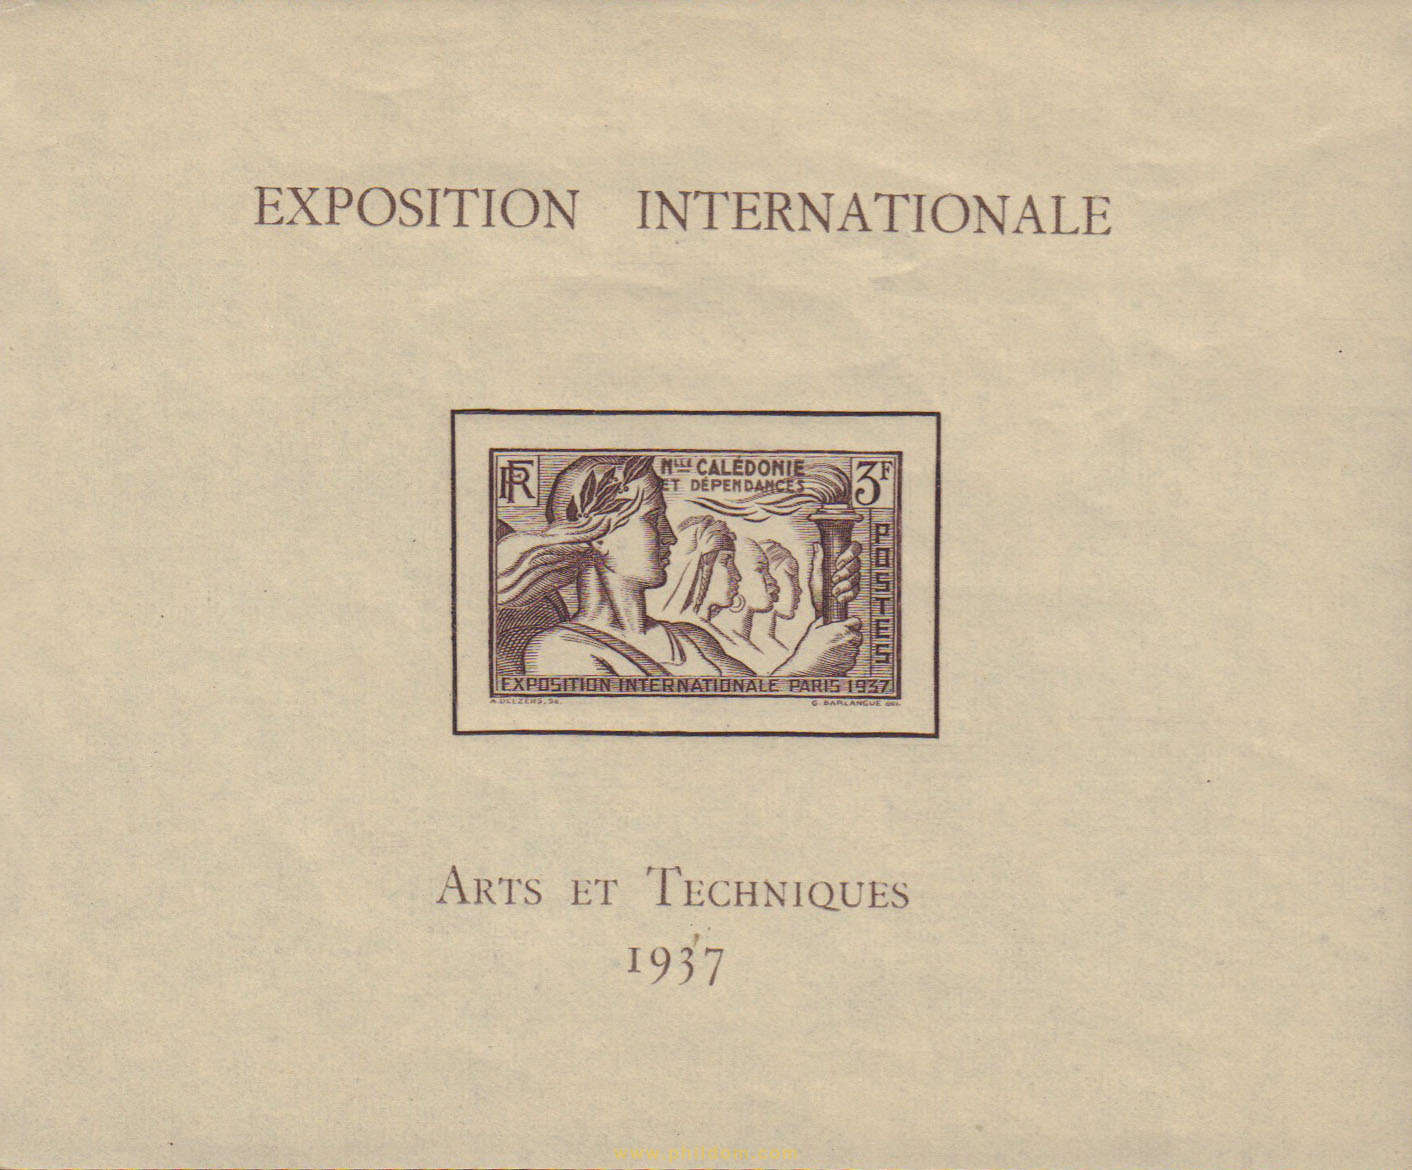 EXPOSICON INTERNACIONAL EN PARIS